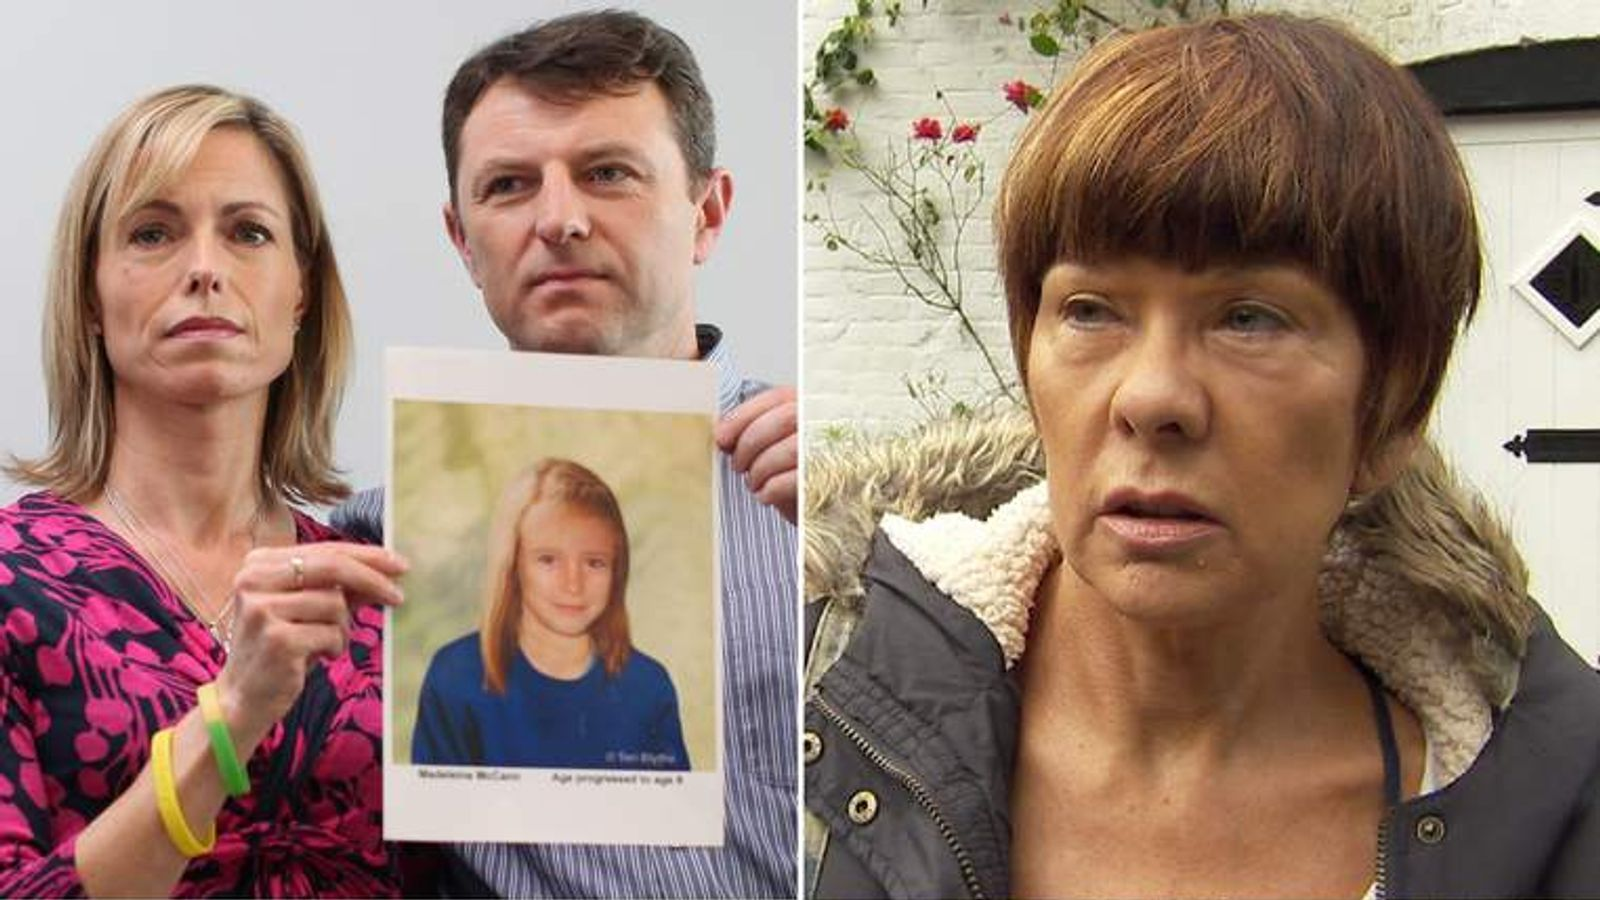 Kate and Gerry McCann trolled on twitter